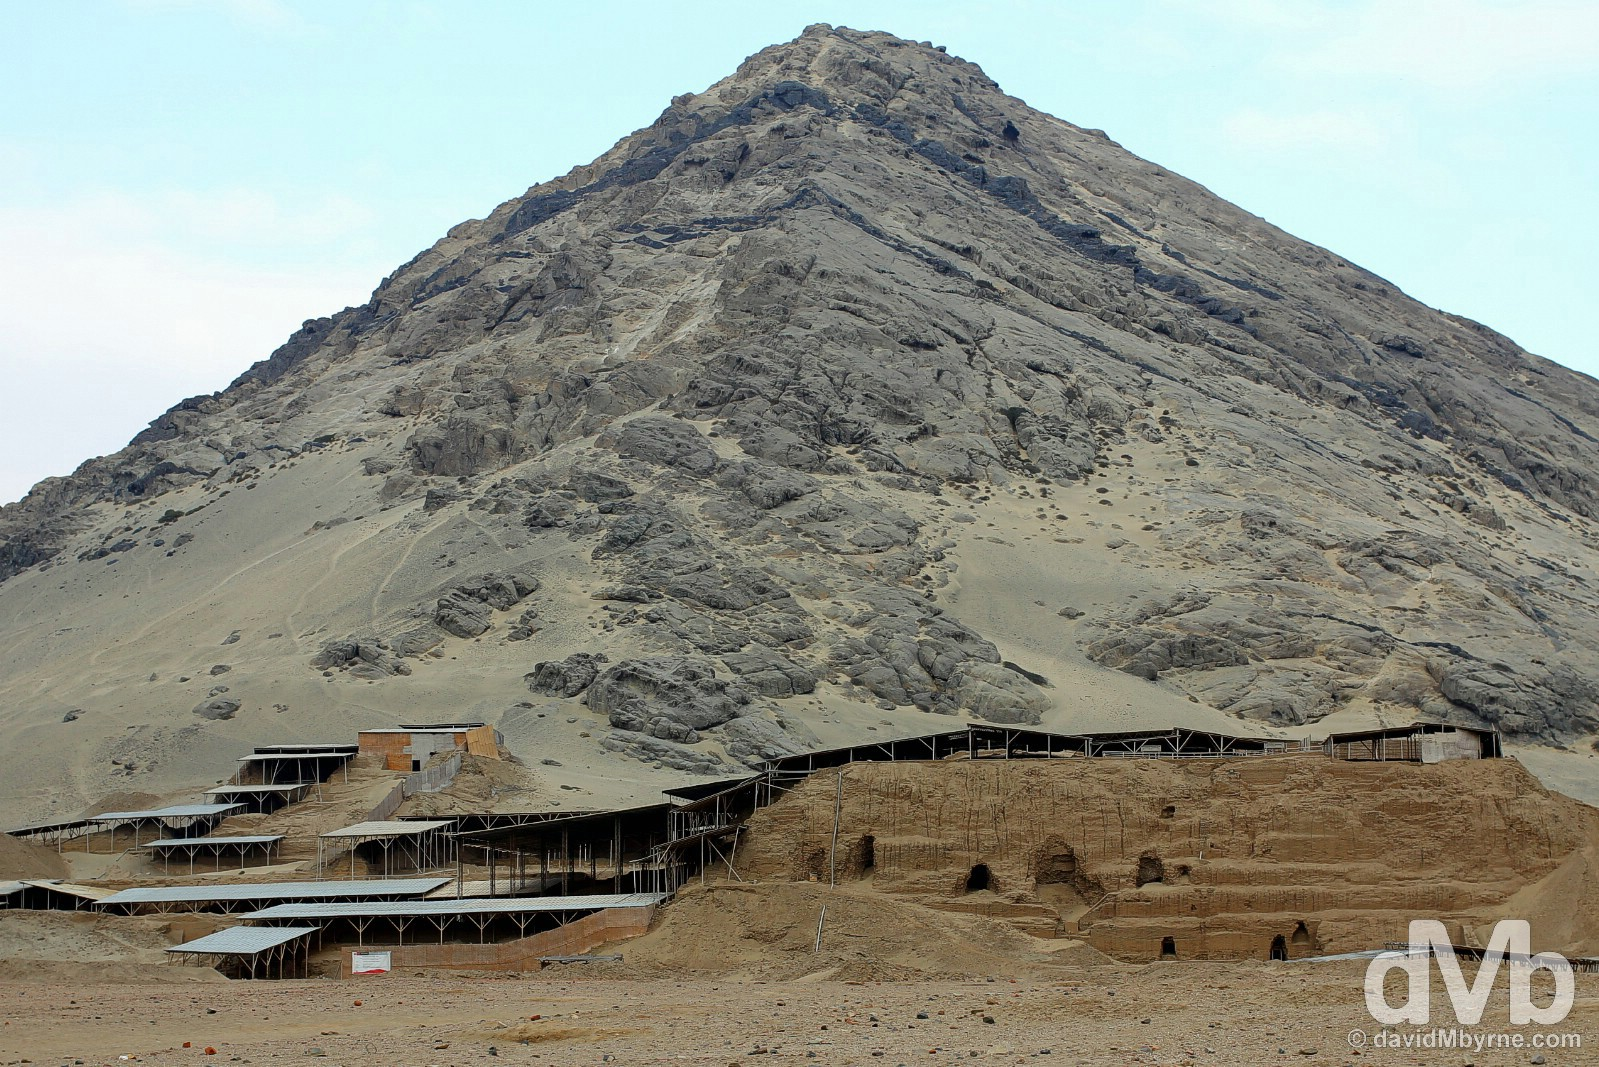 Huaca de la Luna (Temple of the Moon) at the base of Cerro Blanca, Moche, northwestern Peru. August 1, 2015.